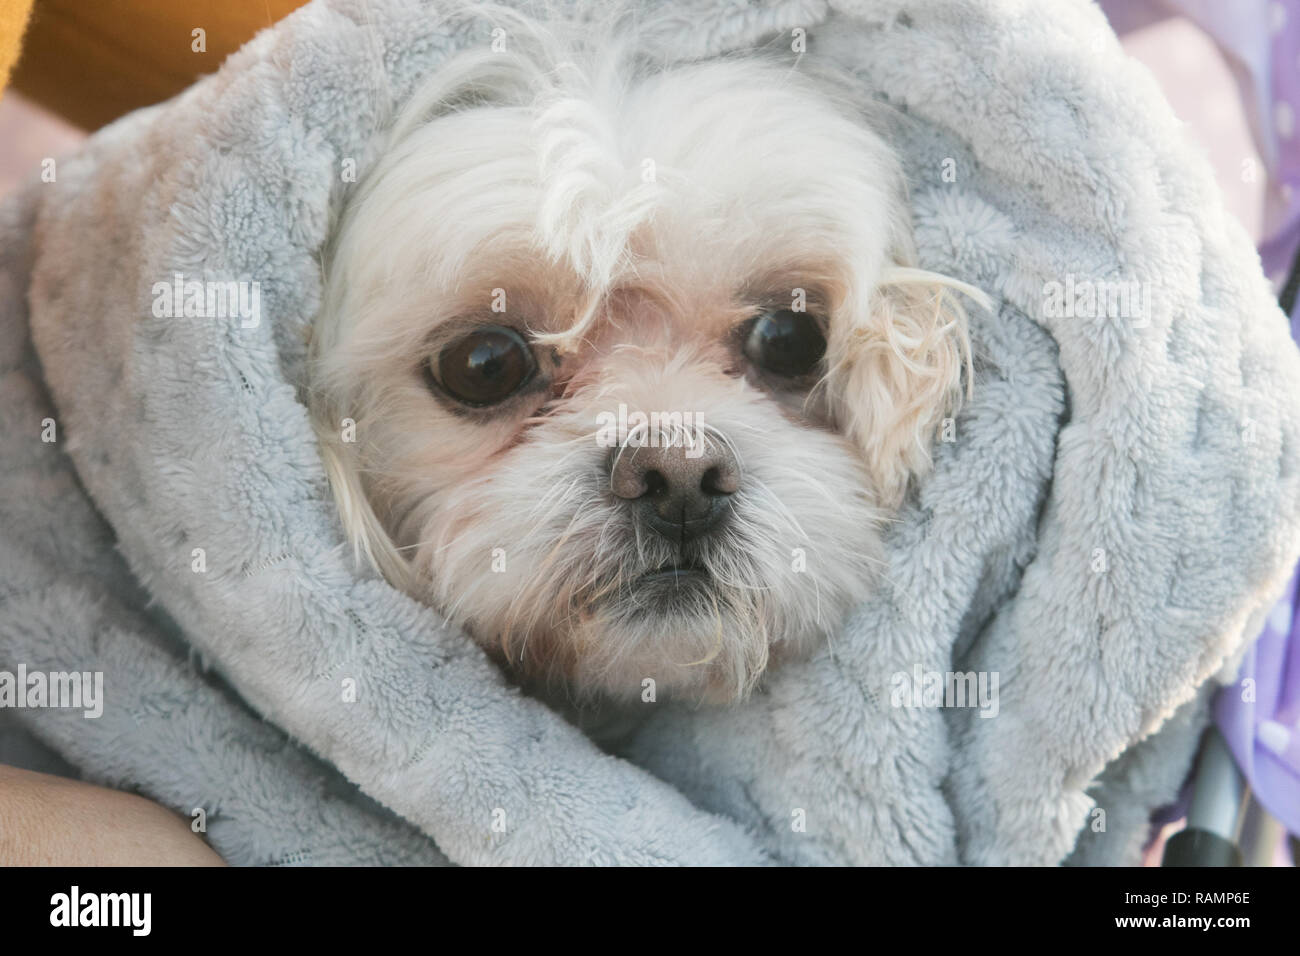 London UK. 4th January 2019. A dog in Wimbledon is wrapped in a blanket against the cold weather as temperatures drop to below freezing celsius Credit: amer ghazzal/Alamy Live News - Stock Image